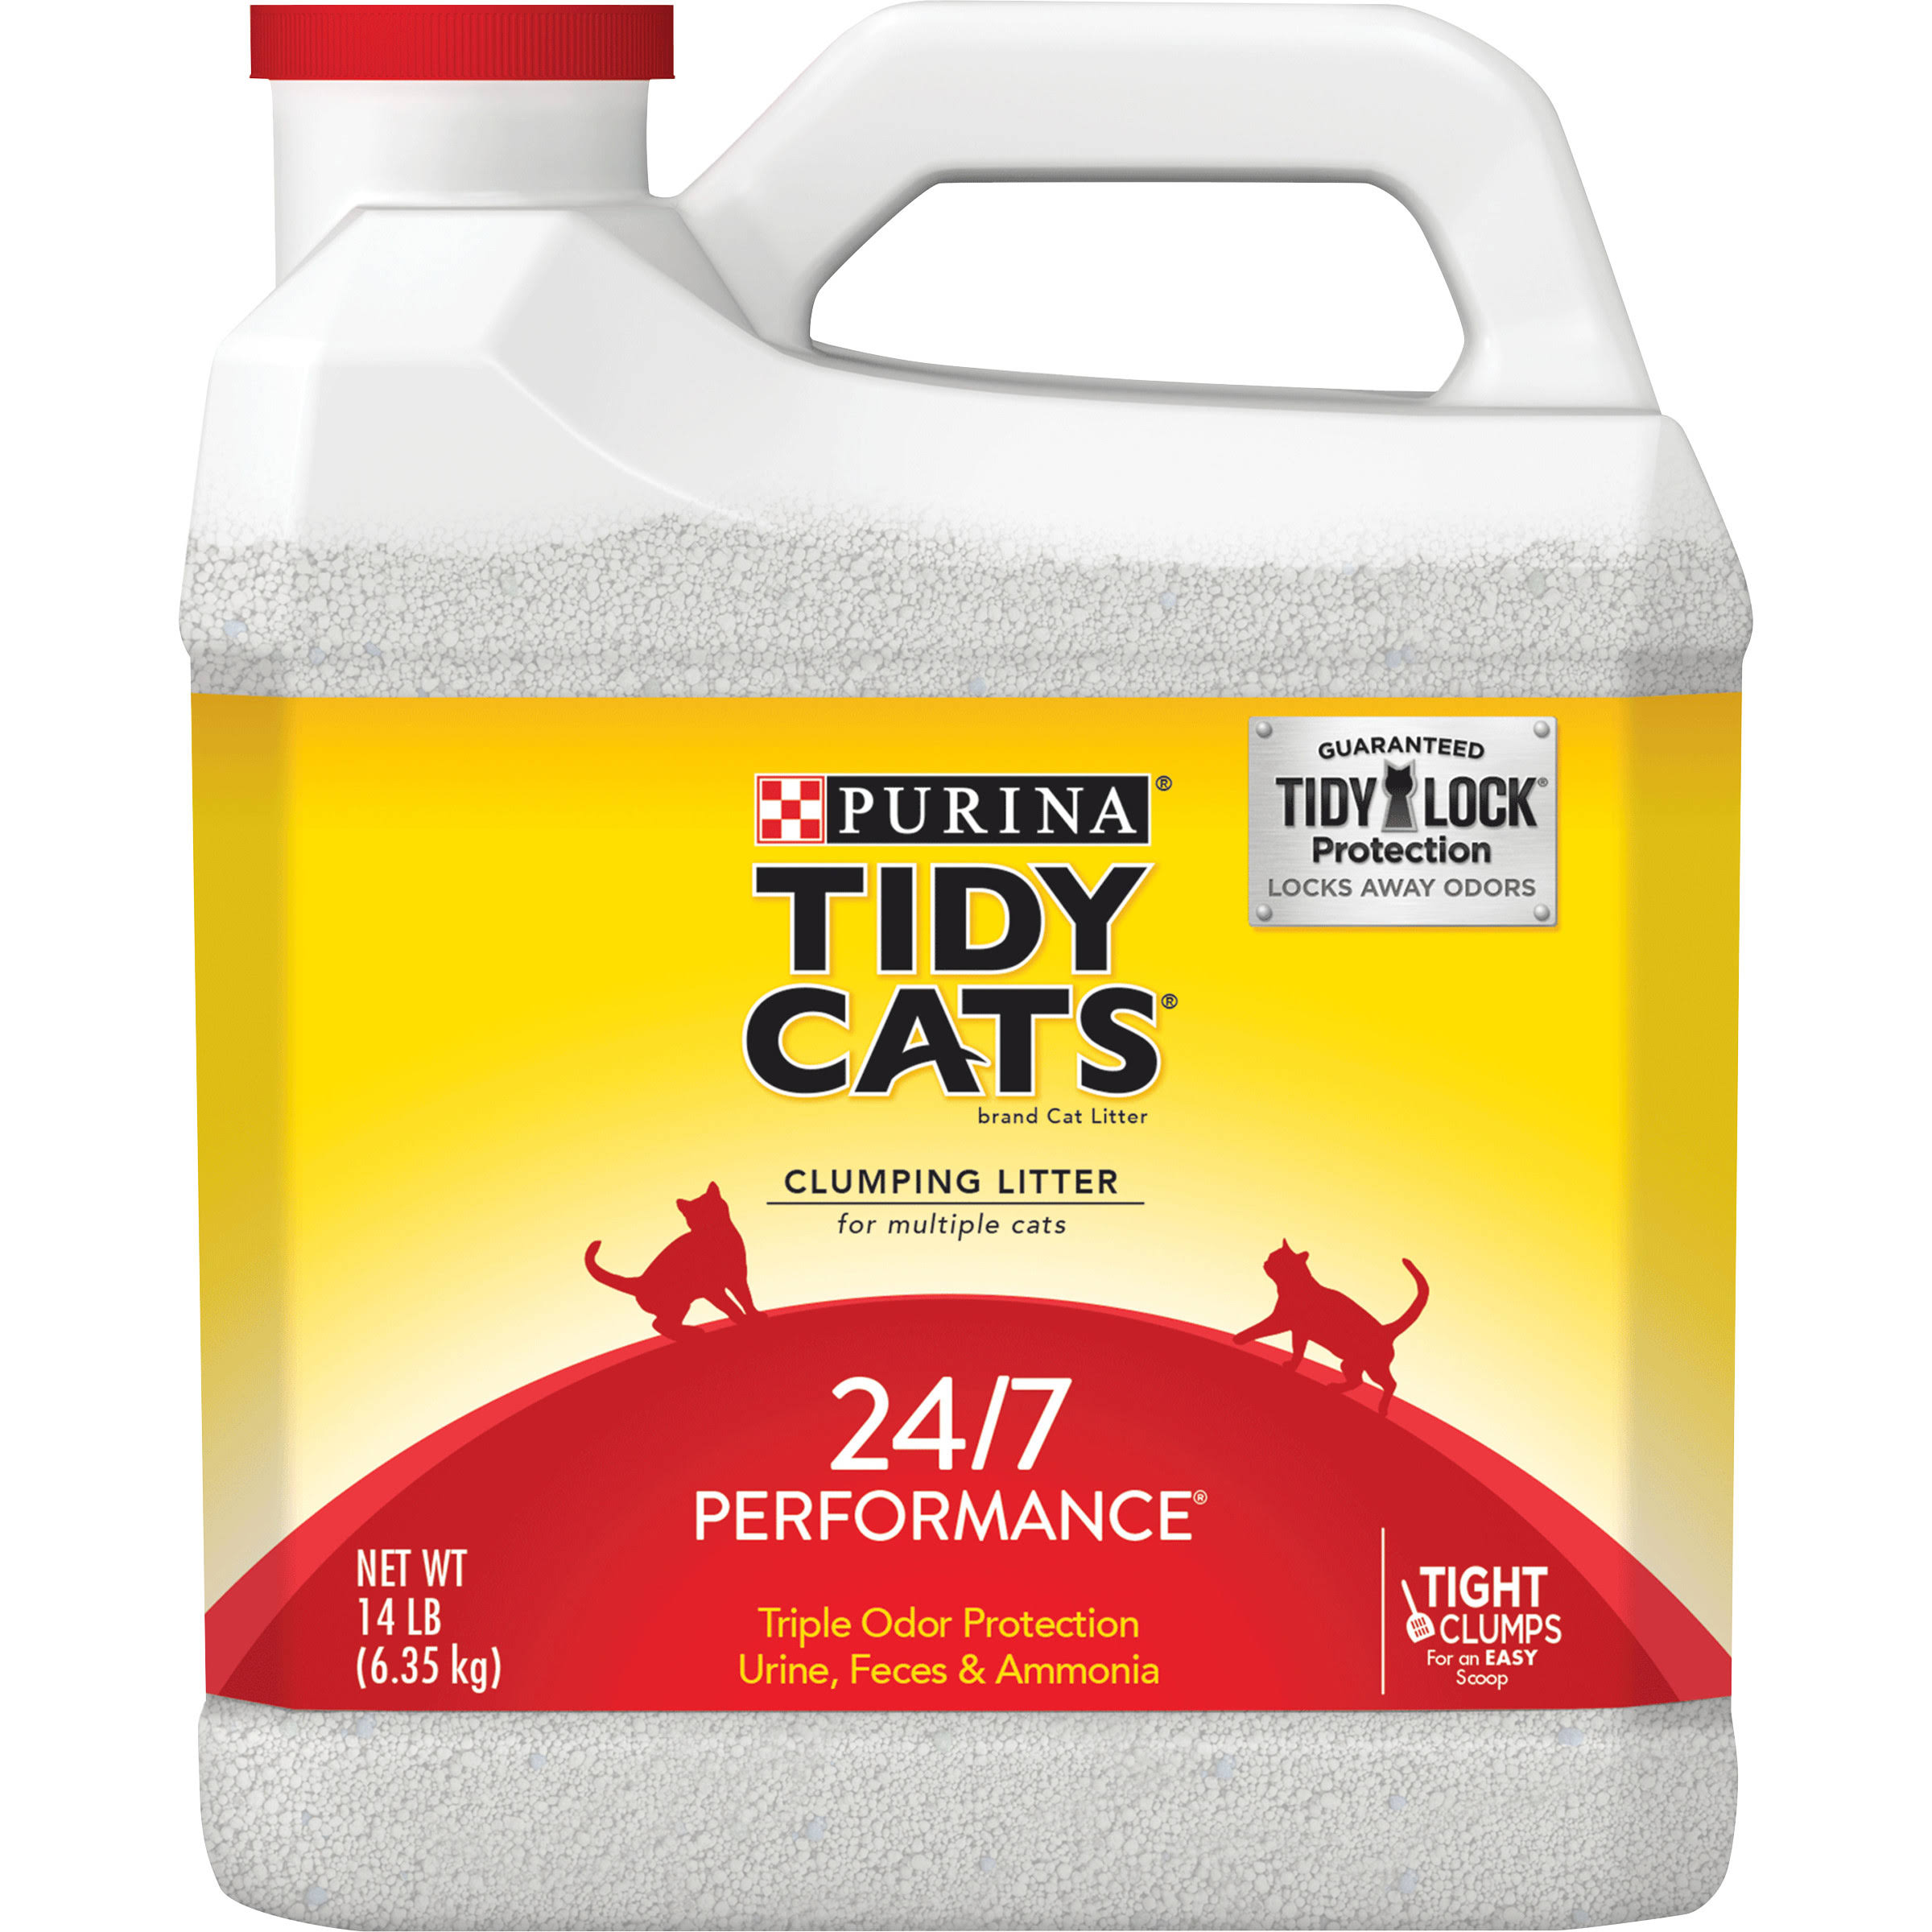 Tidy Cats Purina Clumping Litter 24/7 Performance For Multiple Cats Box - 14lbs